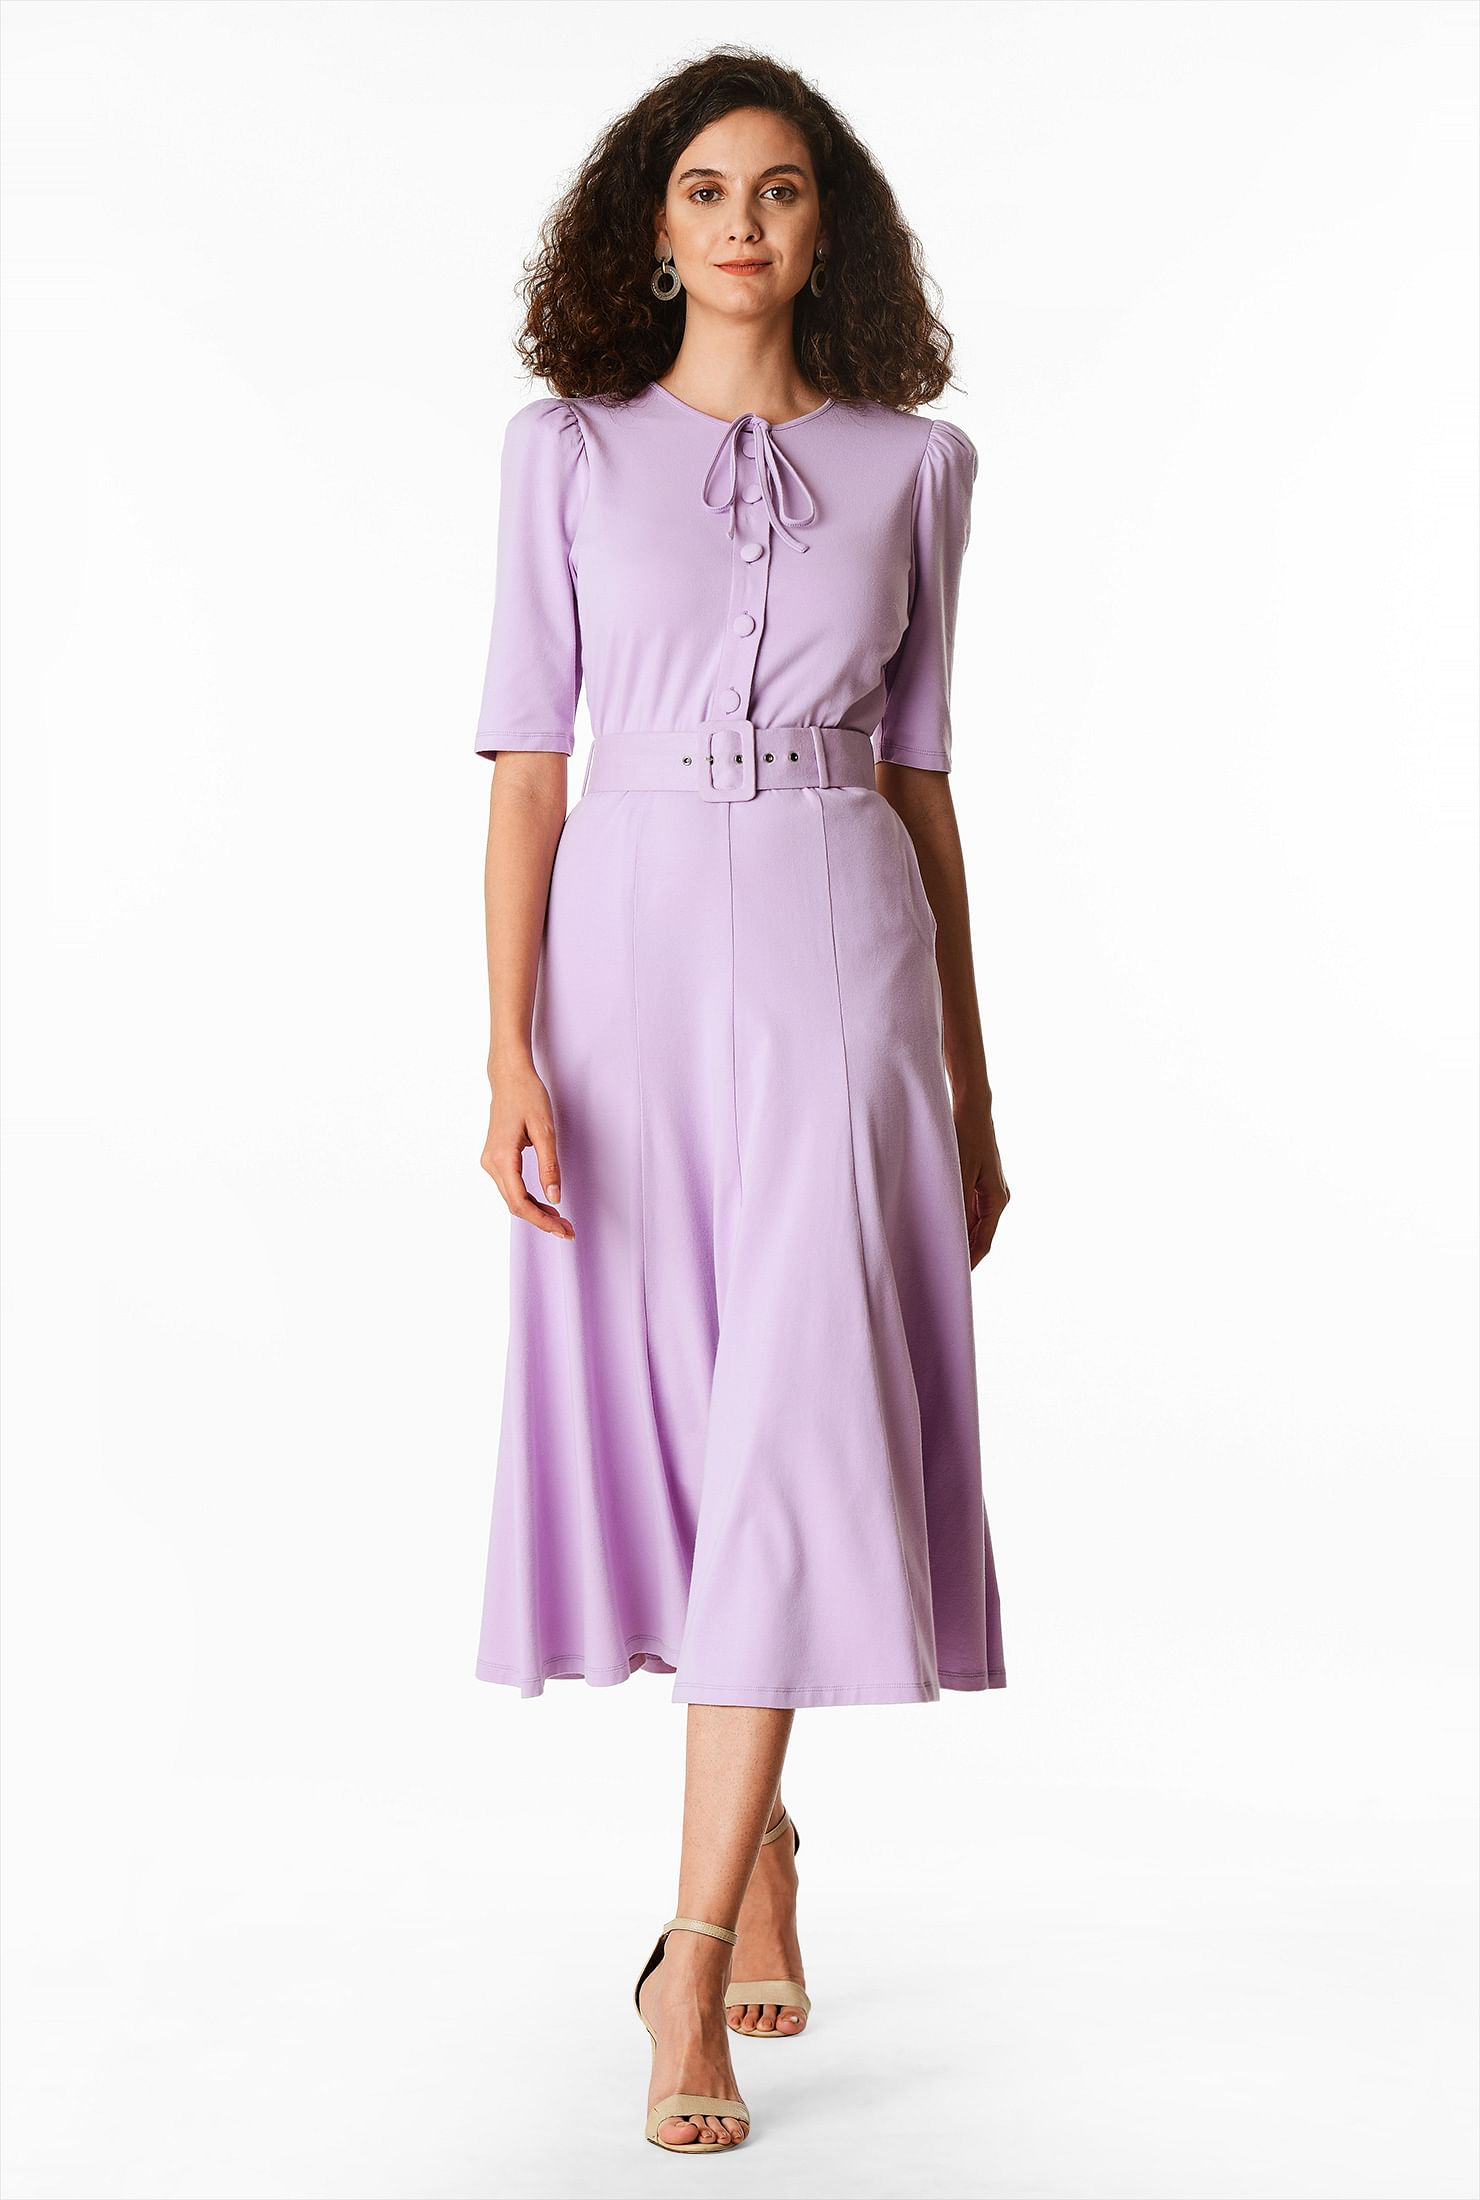 1930s Day Dresses, Afternoon Dresses History Belted cotton knit shirtdress $69.95 AT vintagedancer.com